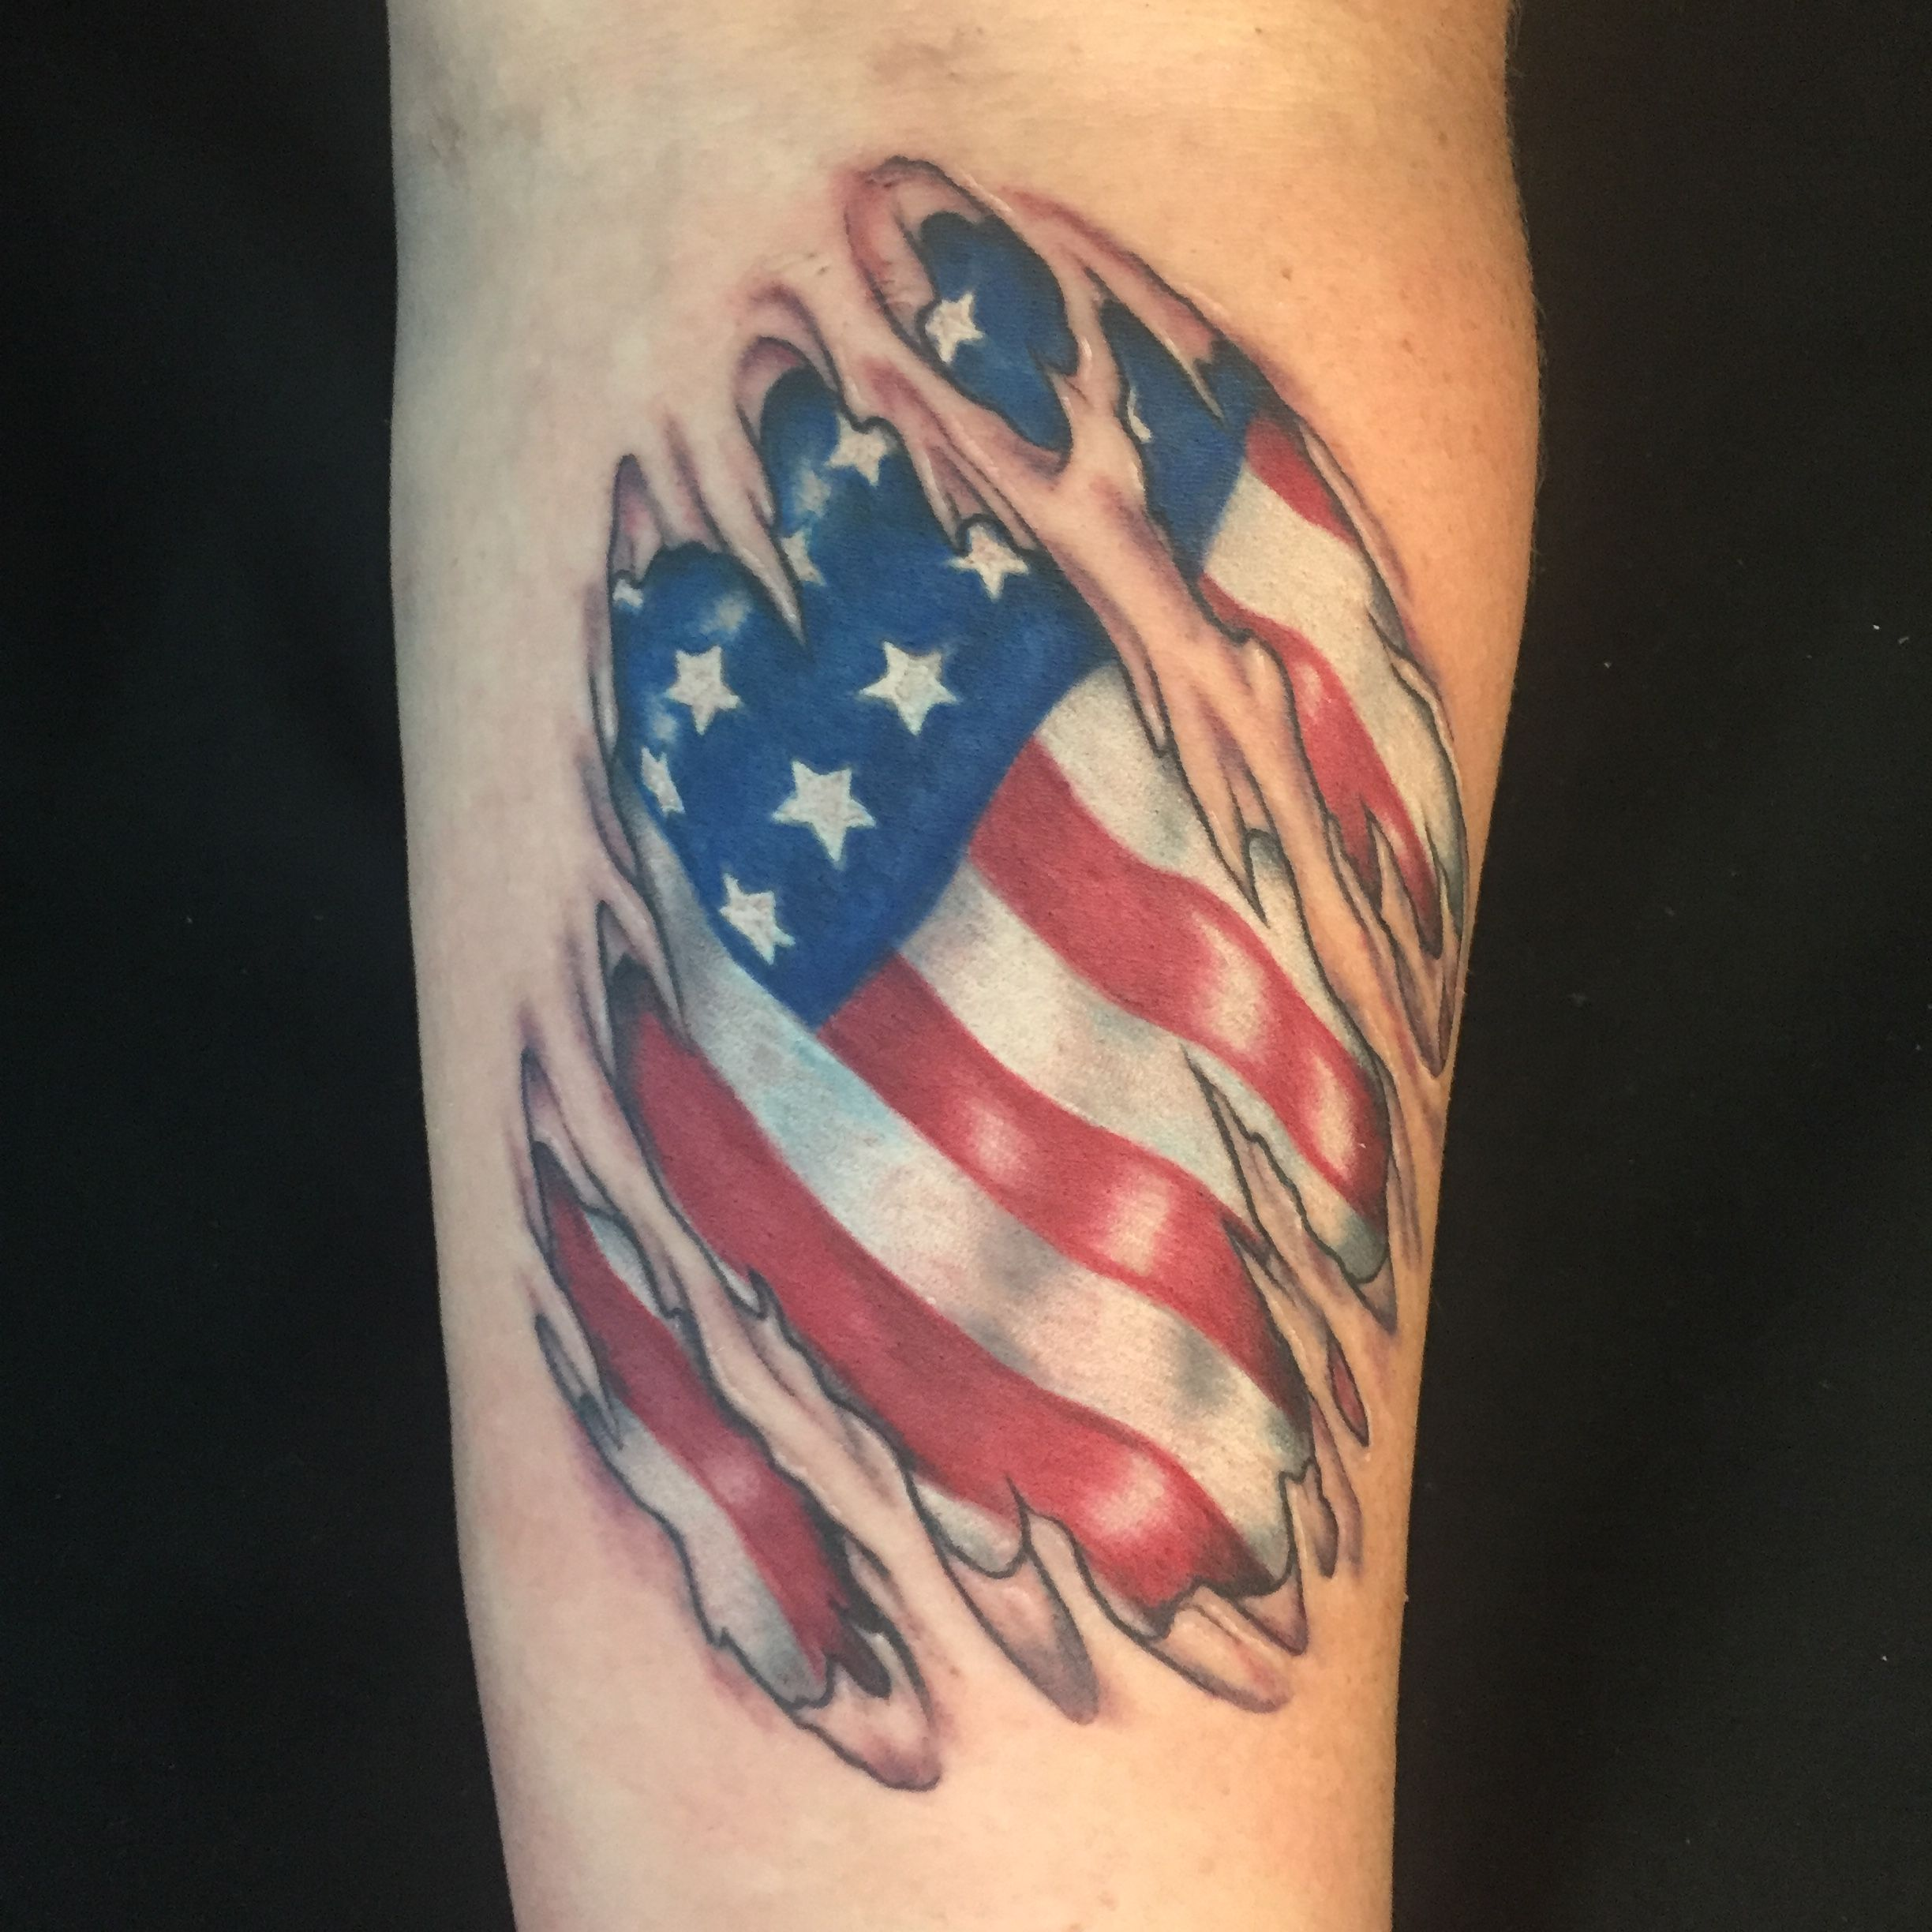 Name canadian flag ripping through skin tattoo designjpg pictures - Finally Got To Do A Flag Under Ripped Skin Usually Don T Like Doing The Skin Rips Tattoos Kind Of But An American Flag Under Skin Rips Will Never Get